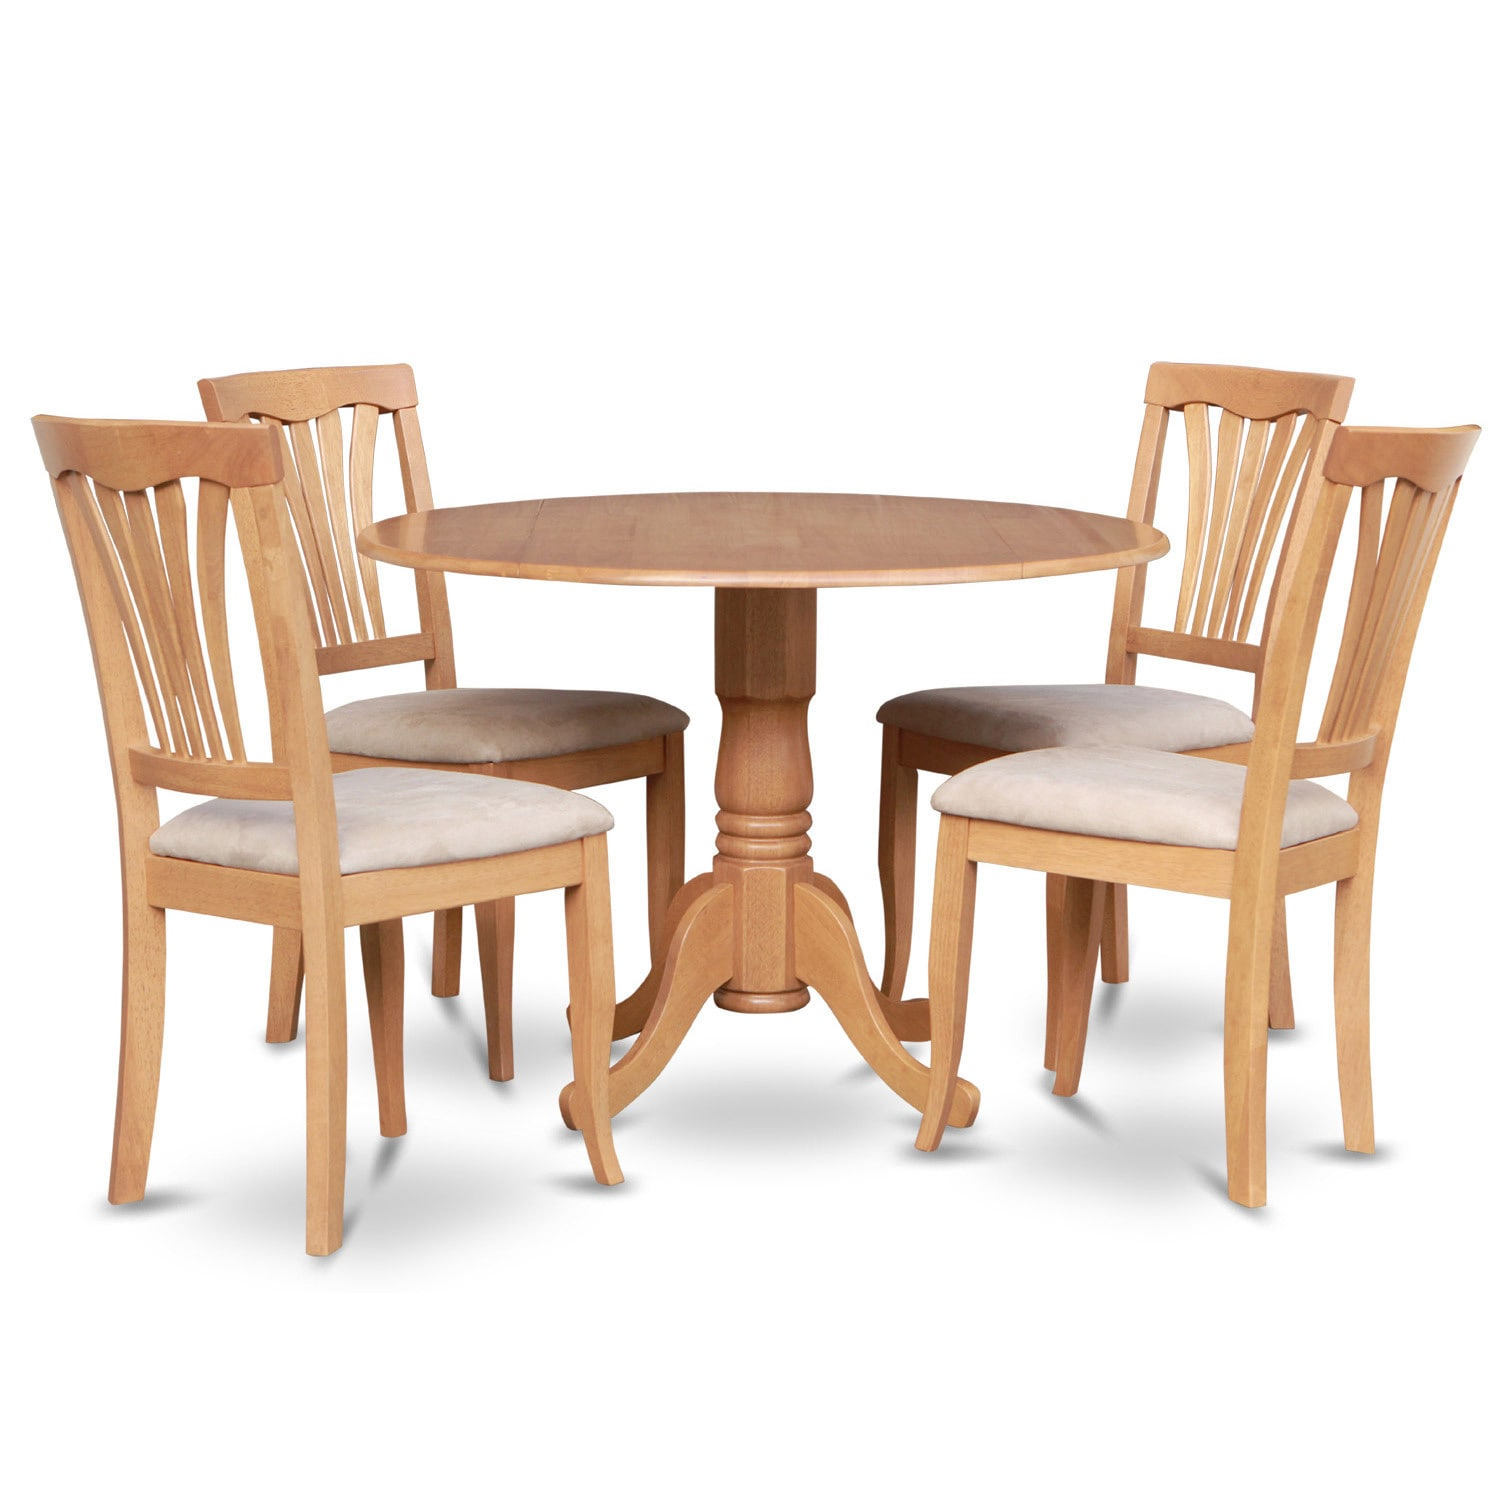 Oak round kitchen table and 4 kitchen chairs 5 piece for 4 piece dining table set